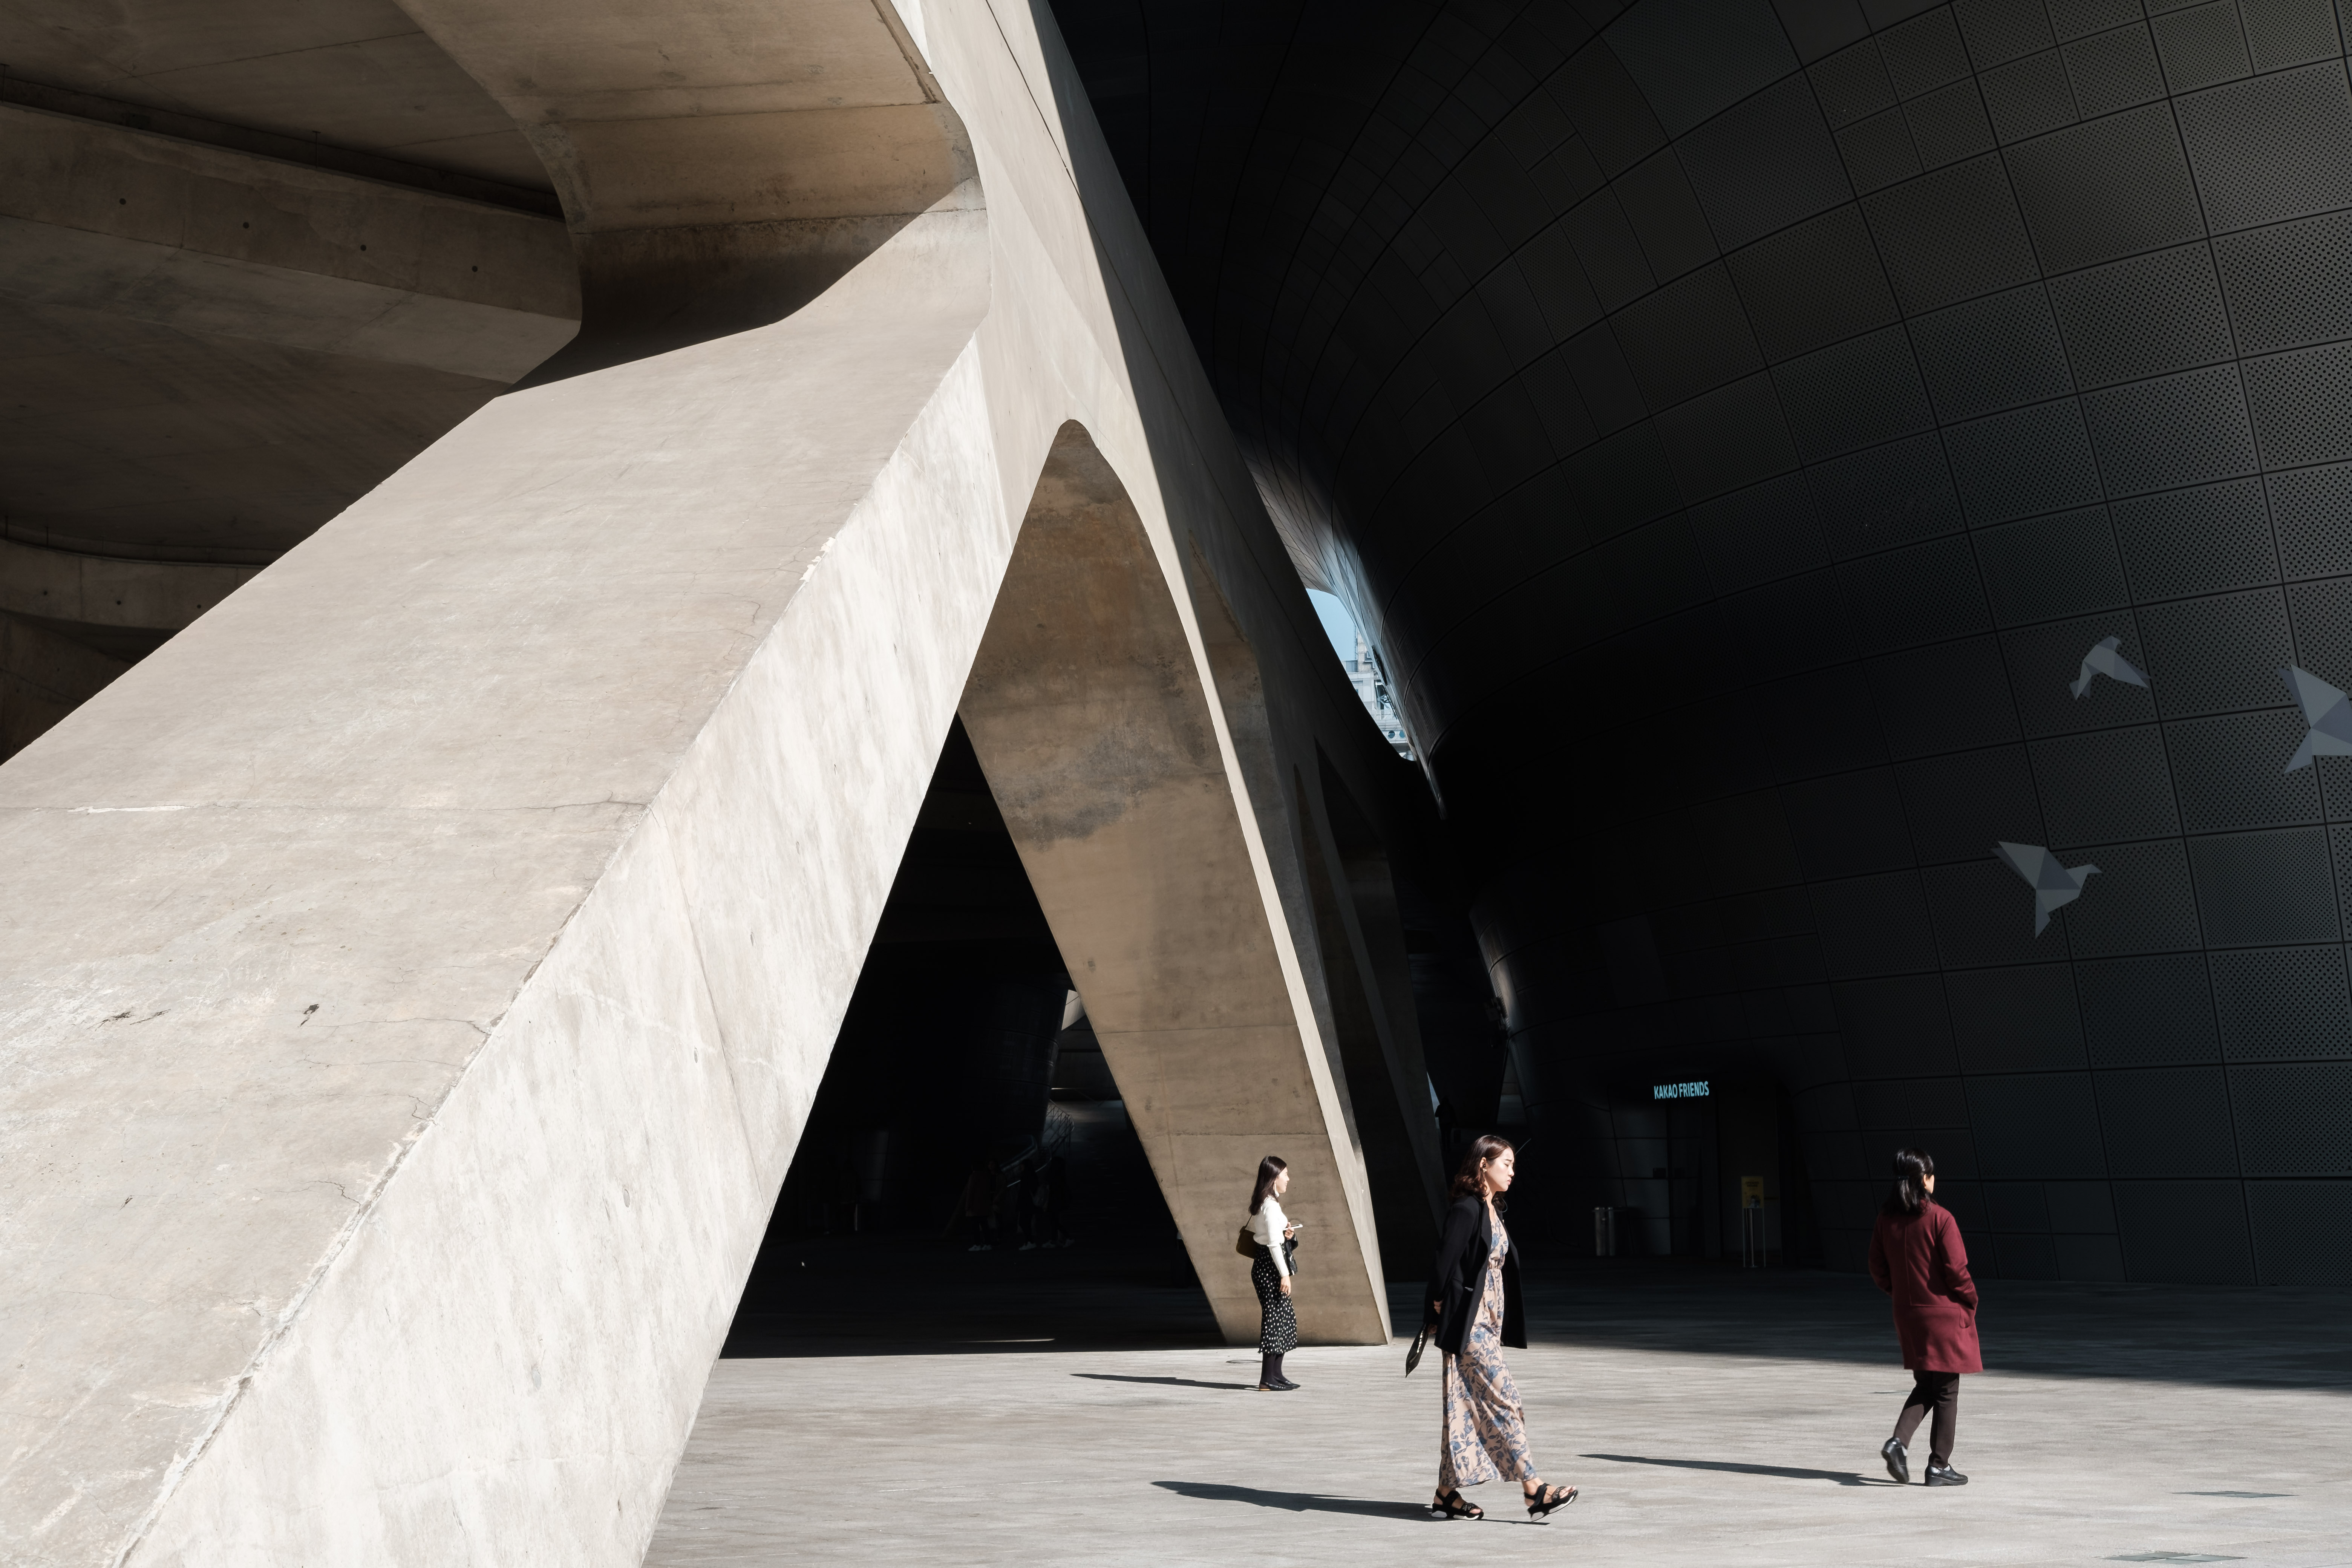 Sunny autumn day in Seoul, visiting Dongdaemun Design Plaza for the first time and marvelling at all the interesting shapes of the building in the afternoon sunlight.